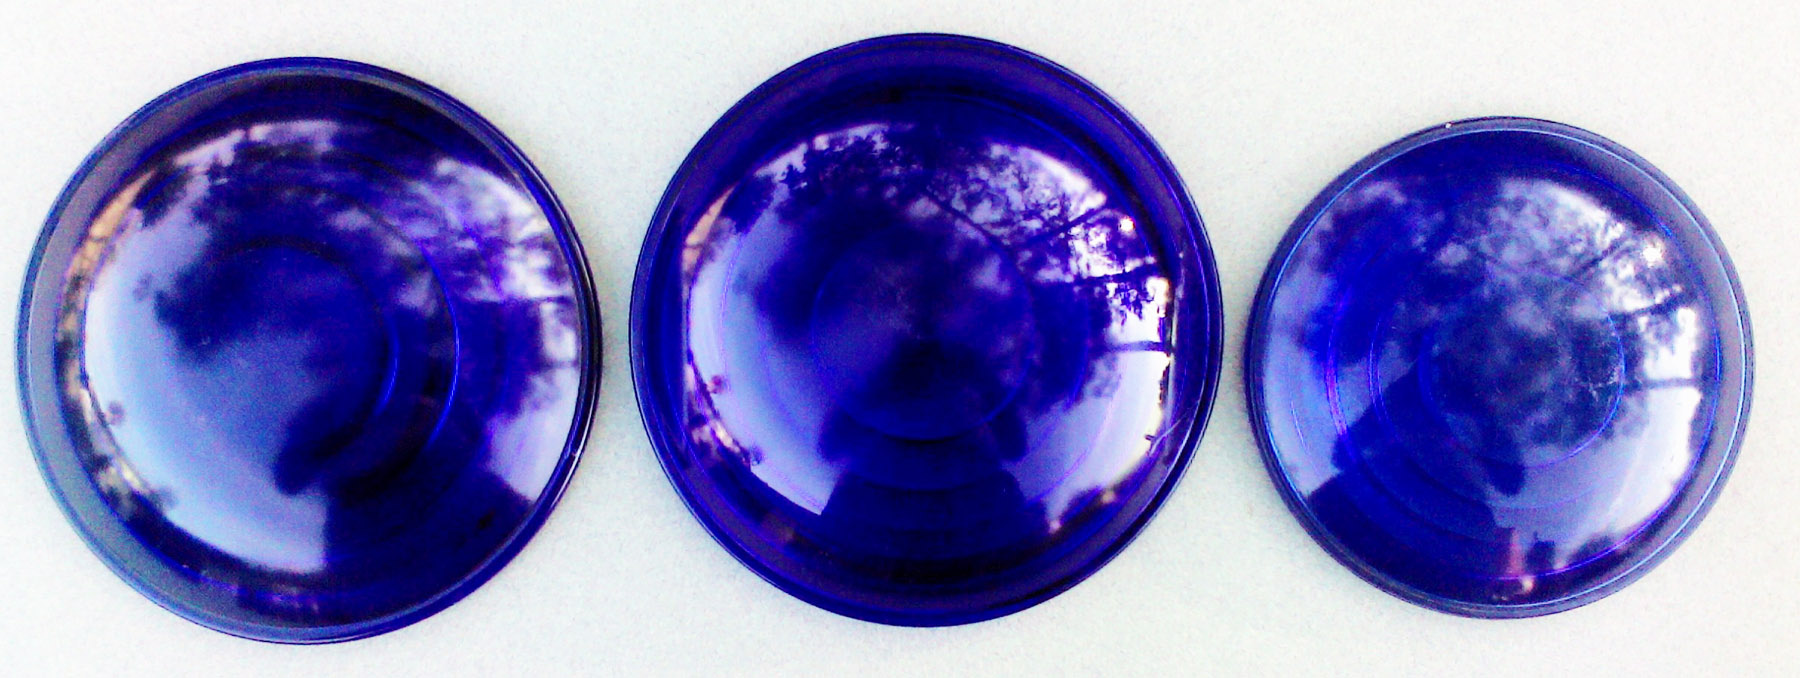 Here Are The Opposite Sides Of Three Bottom Lenses Shown Above From Left To Right Rsa Purple Blue And Lunar White